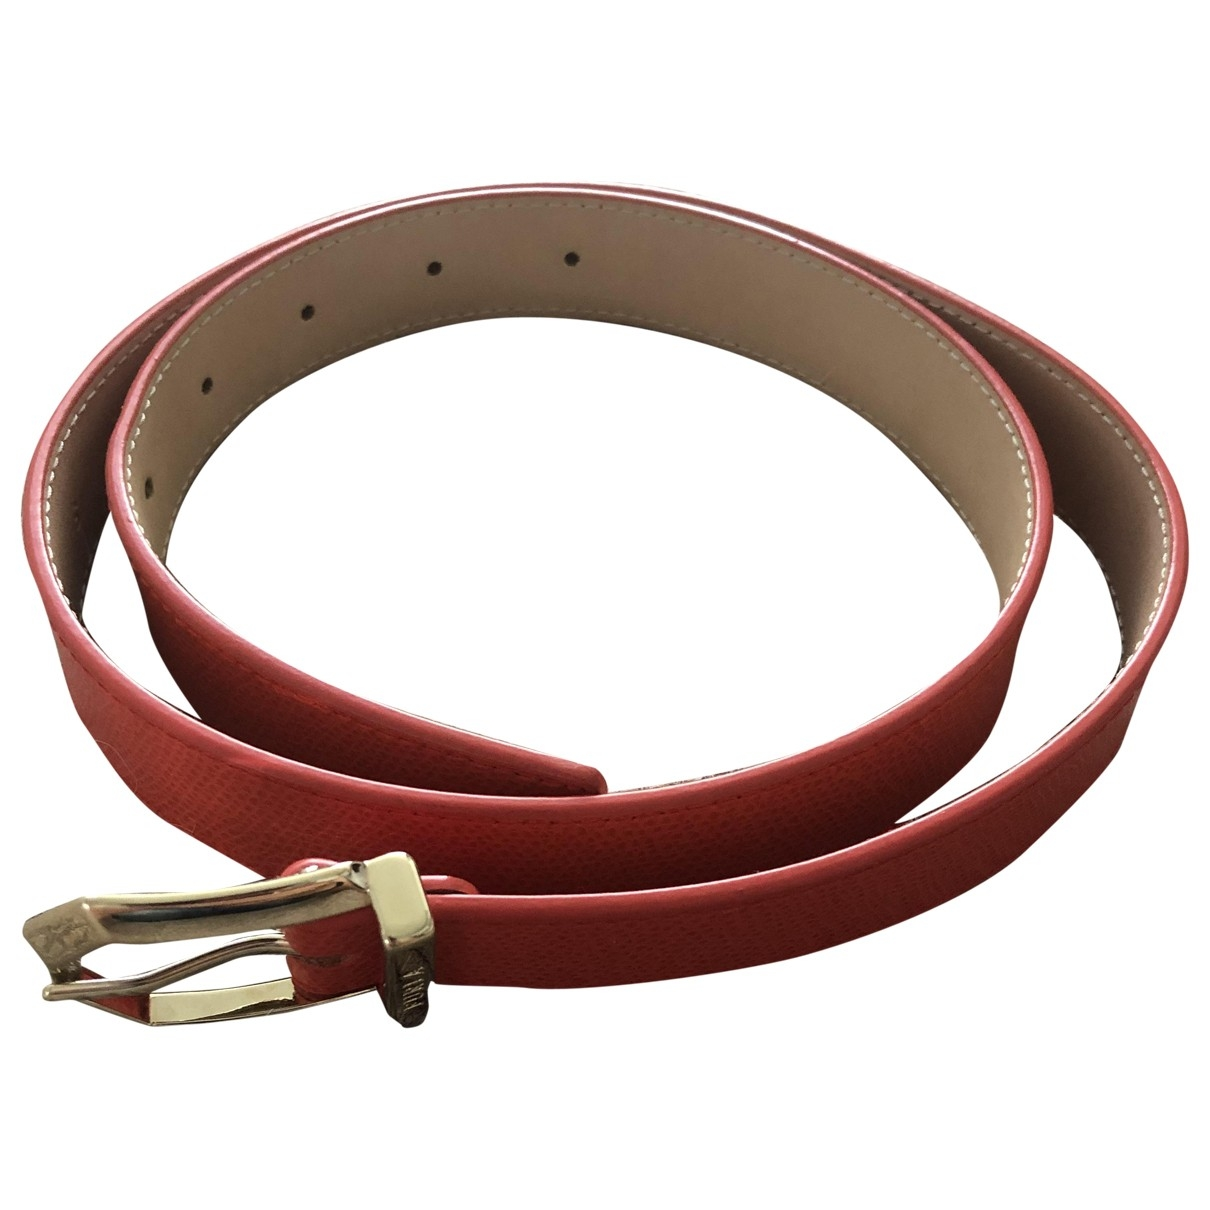 Furla \N Red Leather belt for Women S International